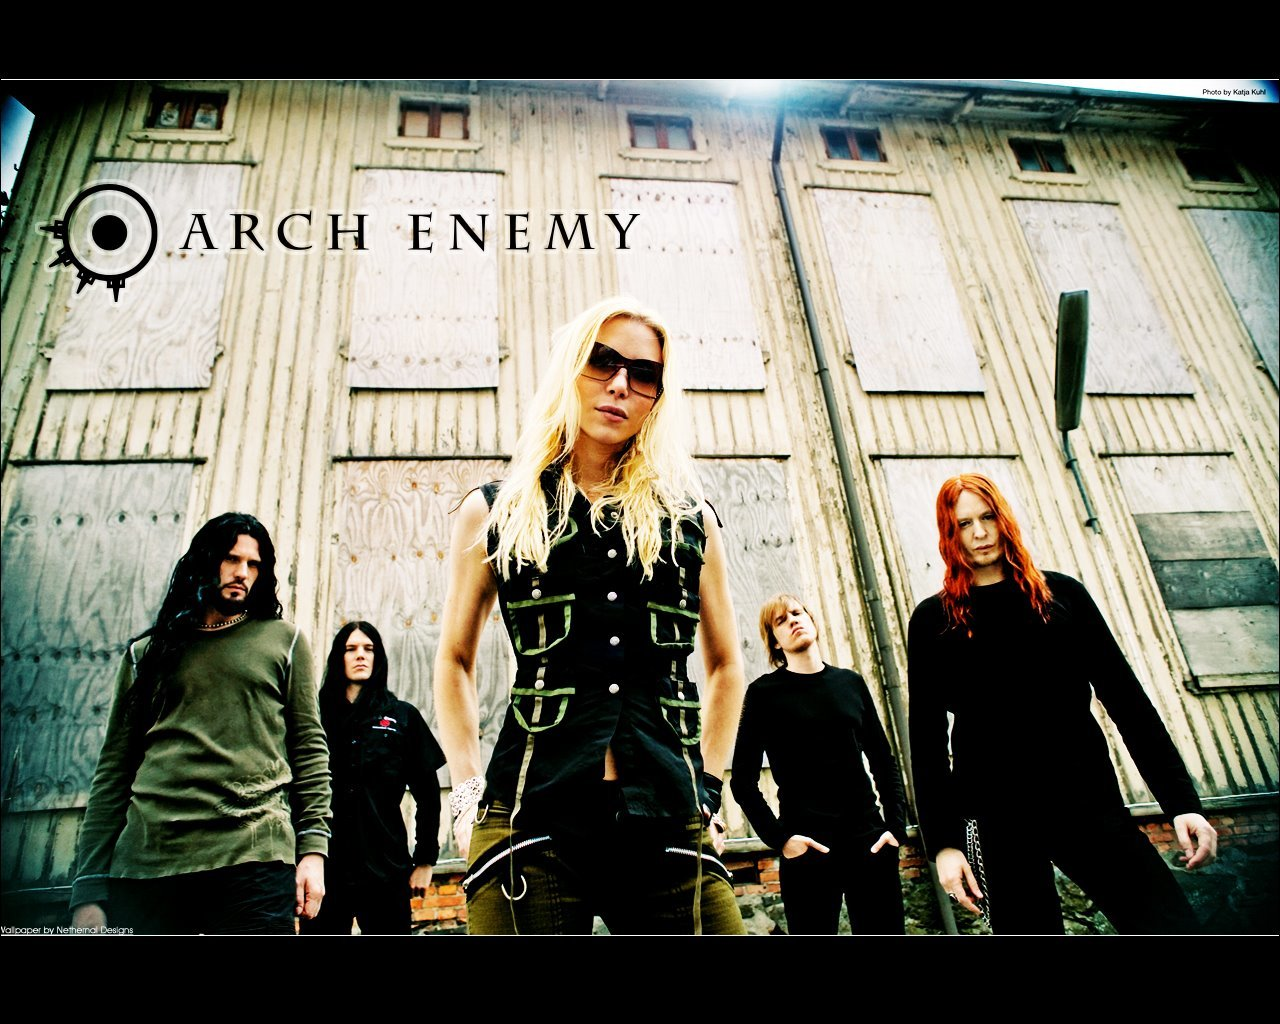 Music arch enemy low-angle